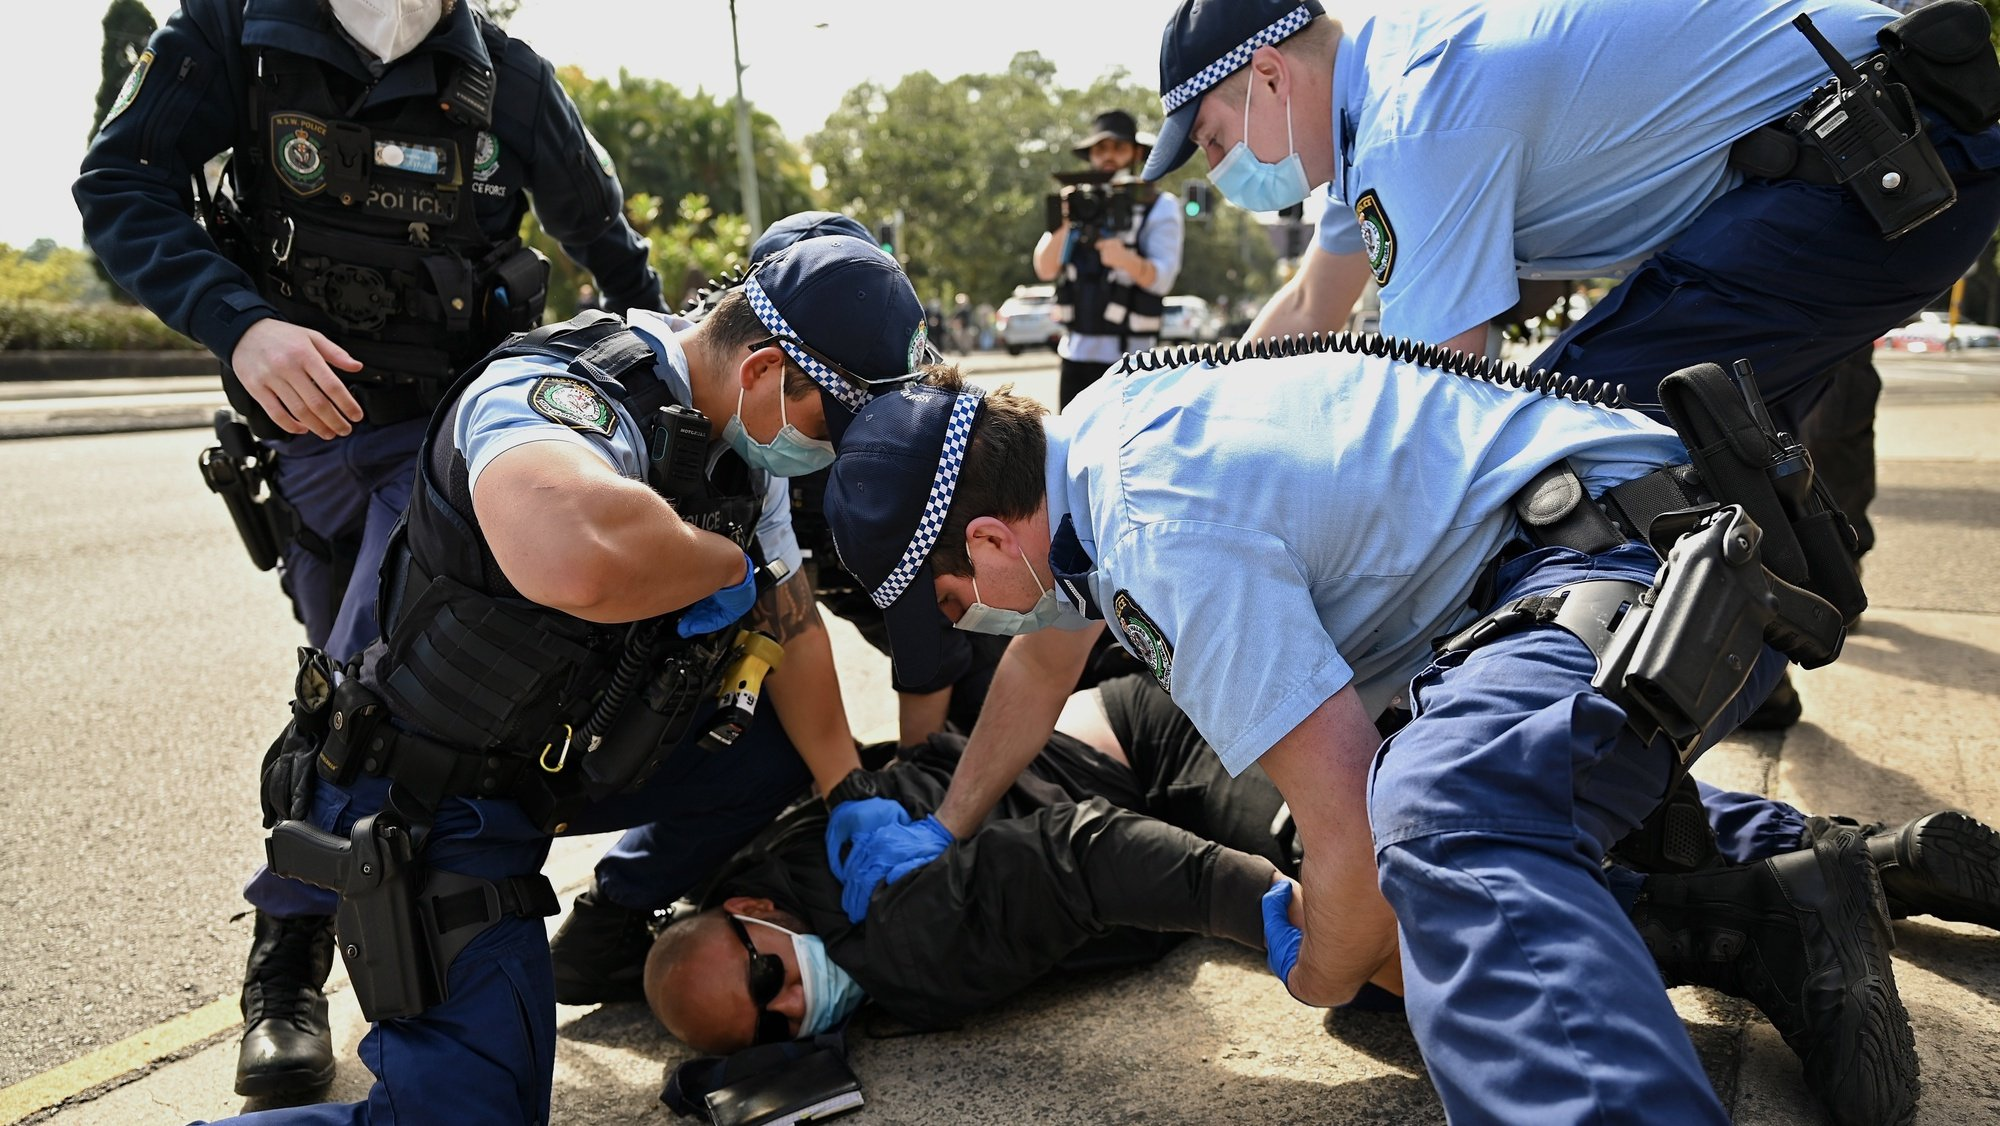 epa09422781 A protester is arrested by police during the 'National Rally for Peace, Freedom and Human Rights' anti-lockdown protest in Sydney, Australia, 21 August 2021. The lockdown in Sydney was extended until the end of September 2021 in an attempt to curb the spread of COVID-19.  EPA/Steven Saphore AUSTRALIA AND NEW ZEALAND OUT